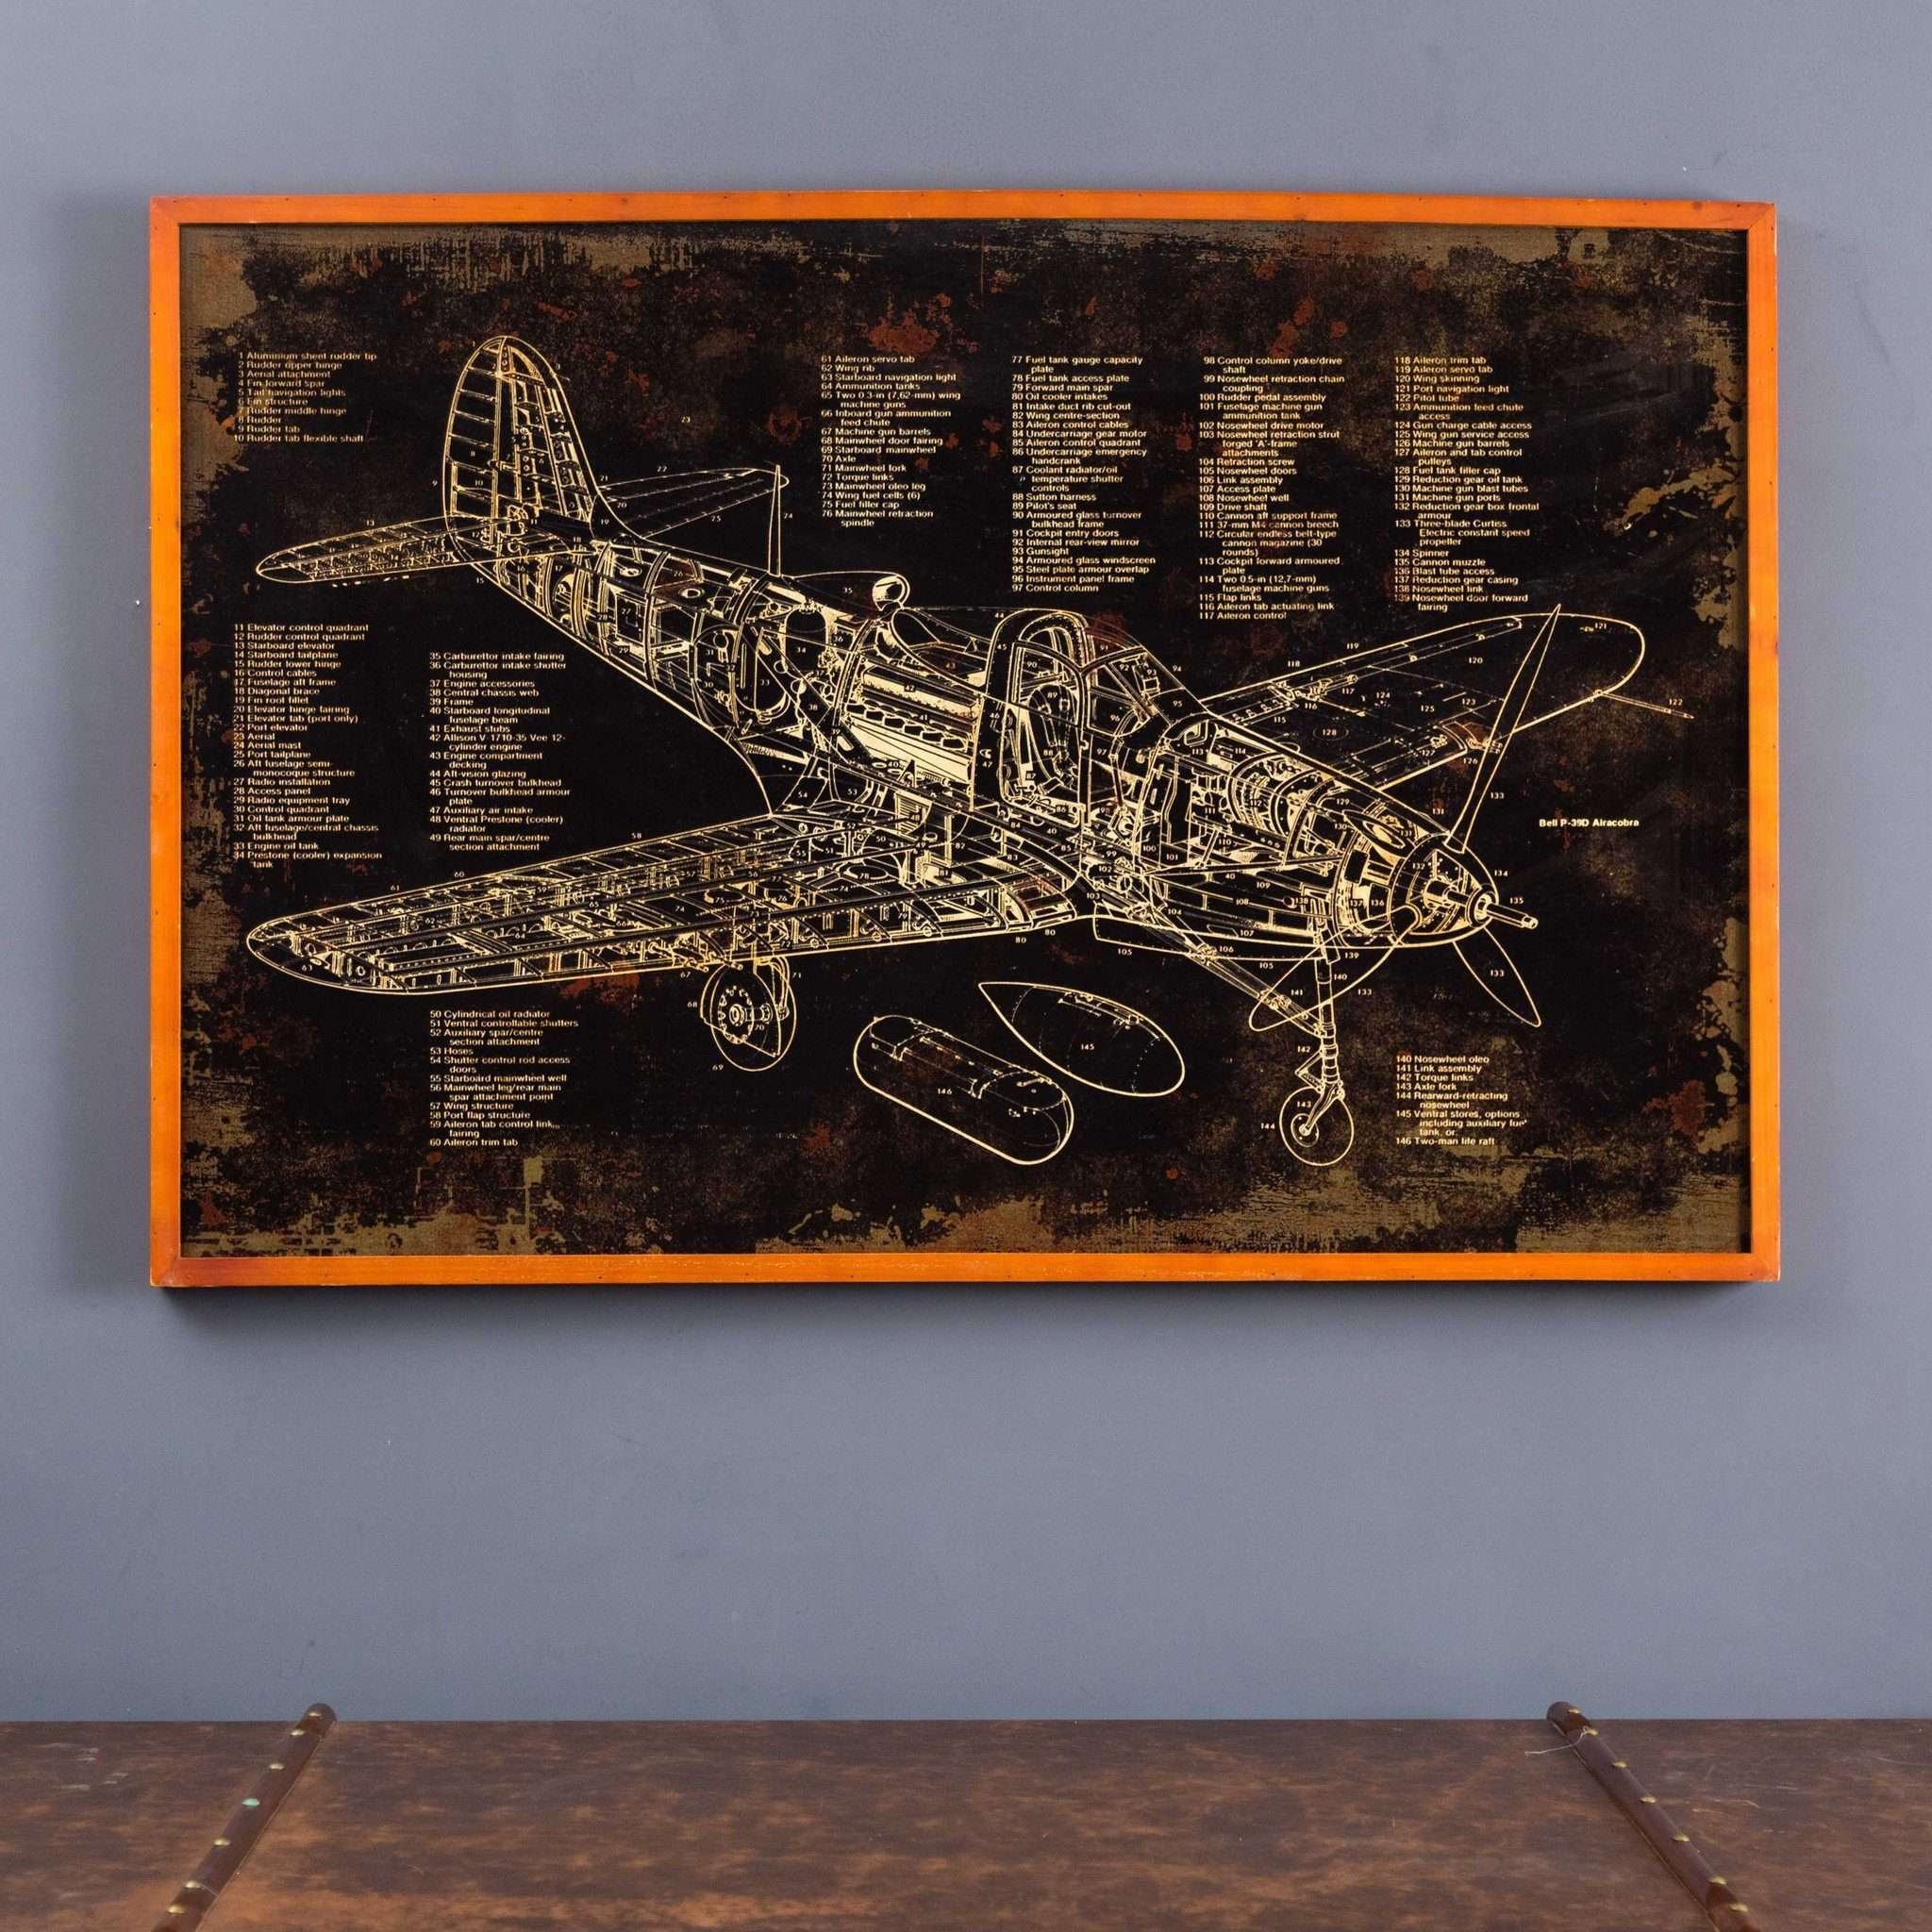 Vintage plane blueprint wall art thedecorkart vintage plane blueprint wall art malvernweather Gallery